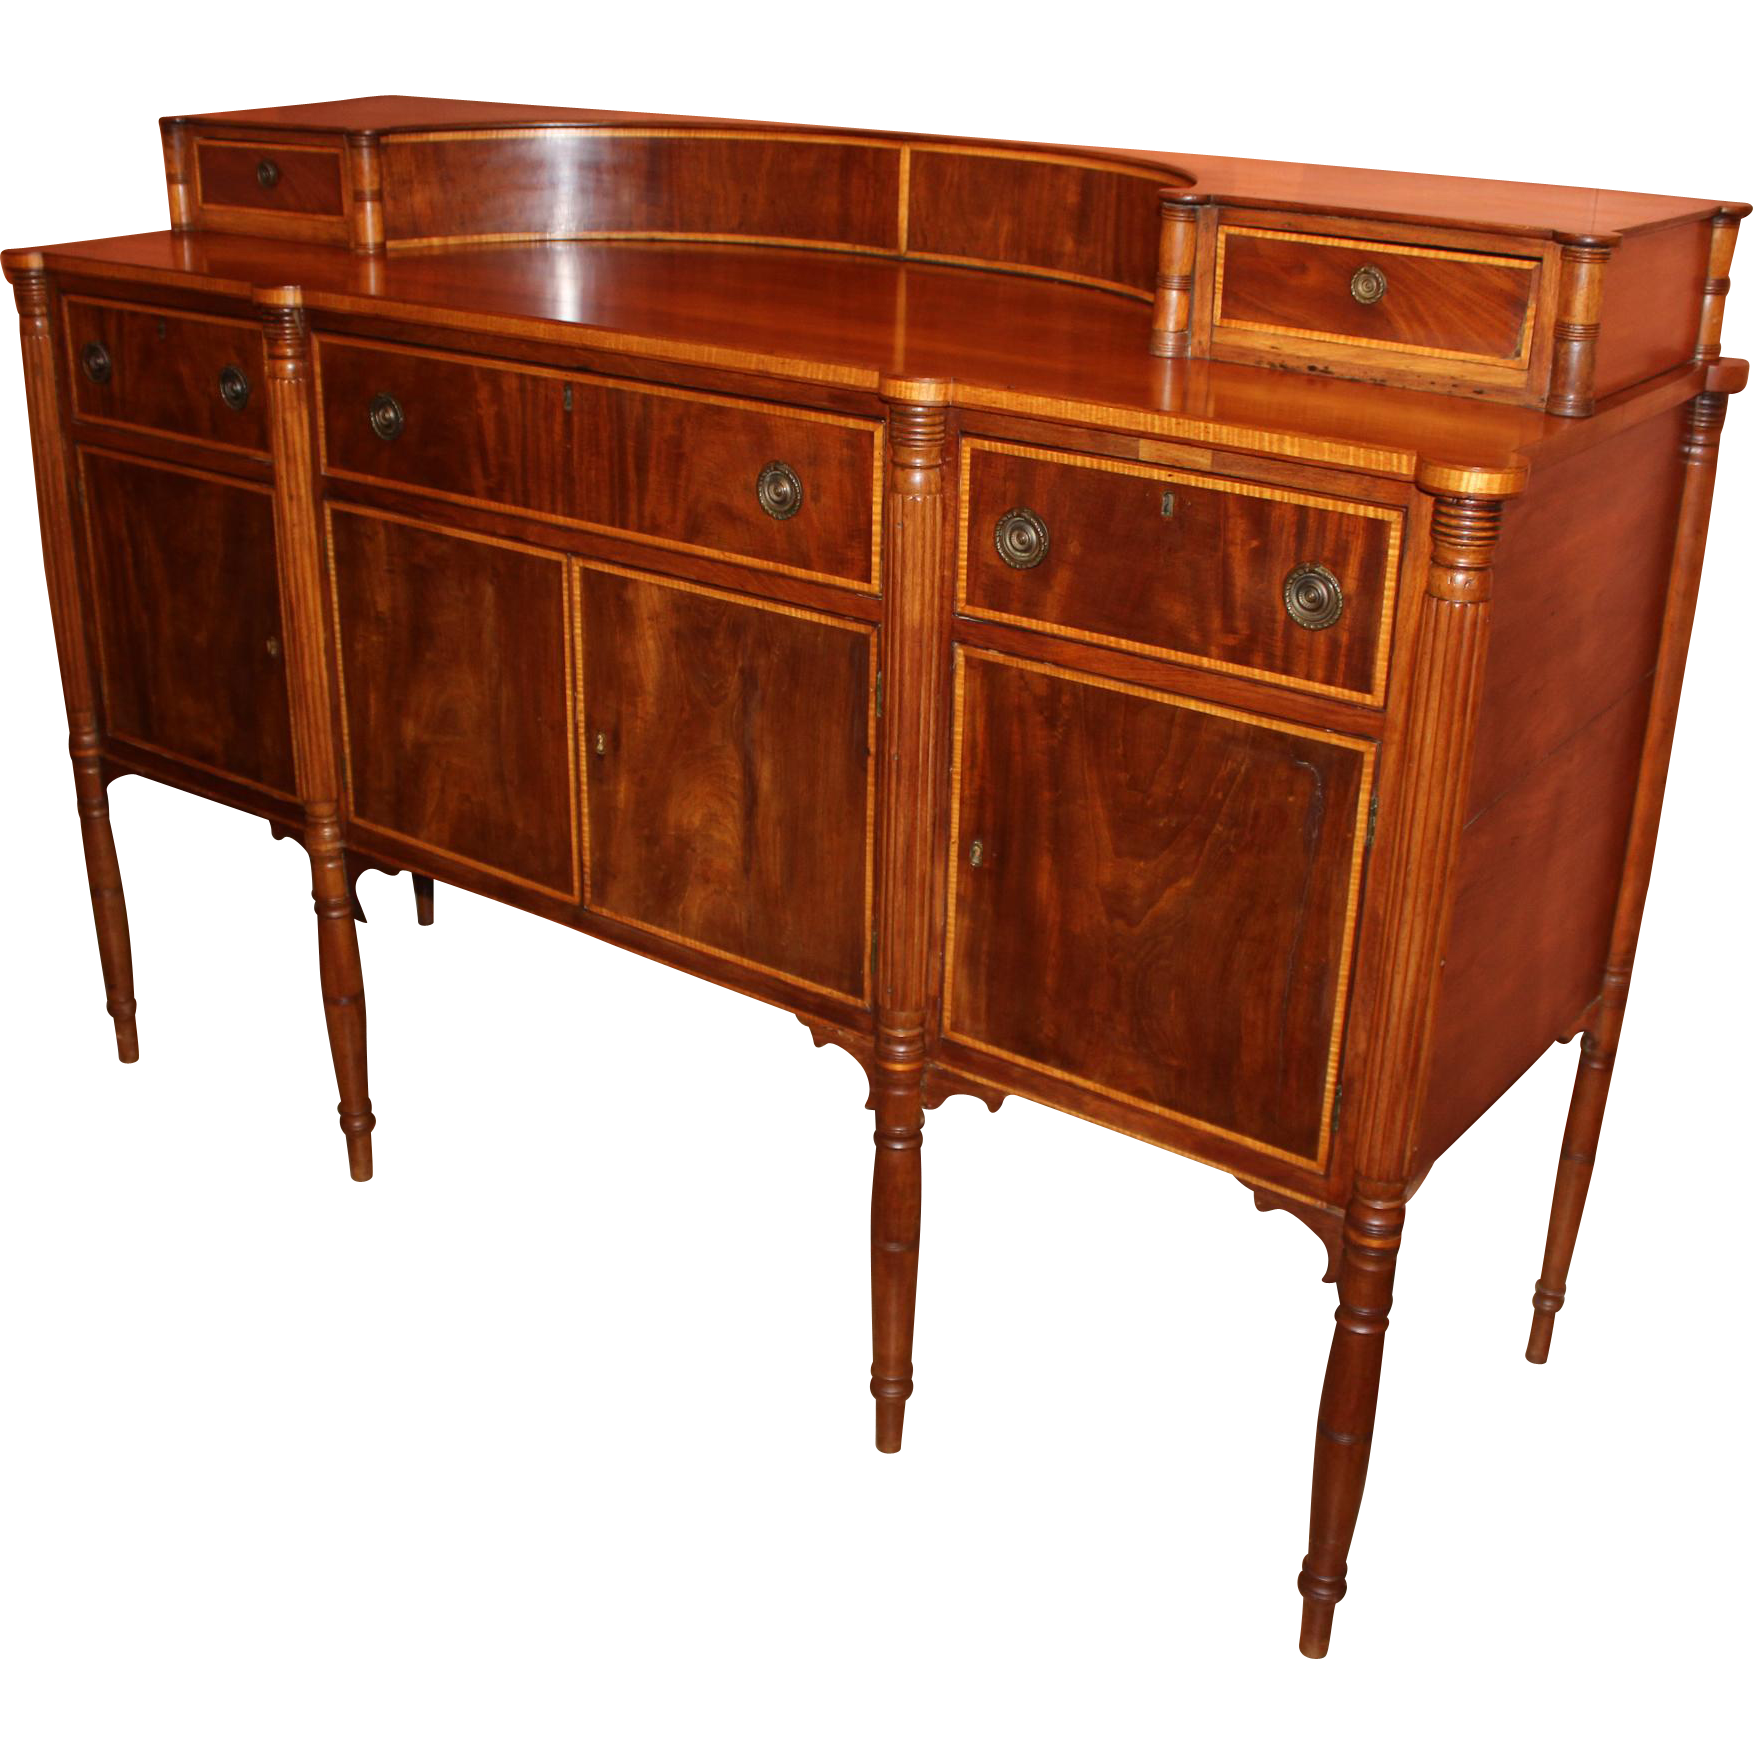 Federal Period Sheraton Sideboard in Cherry and Mahogany